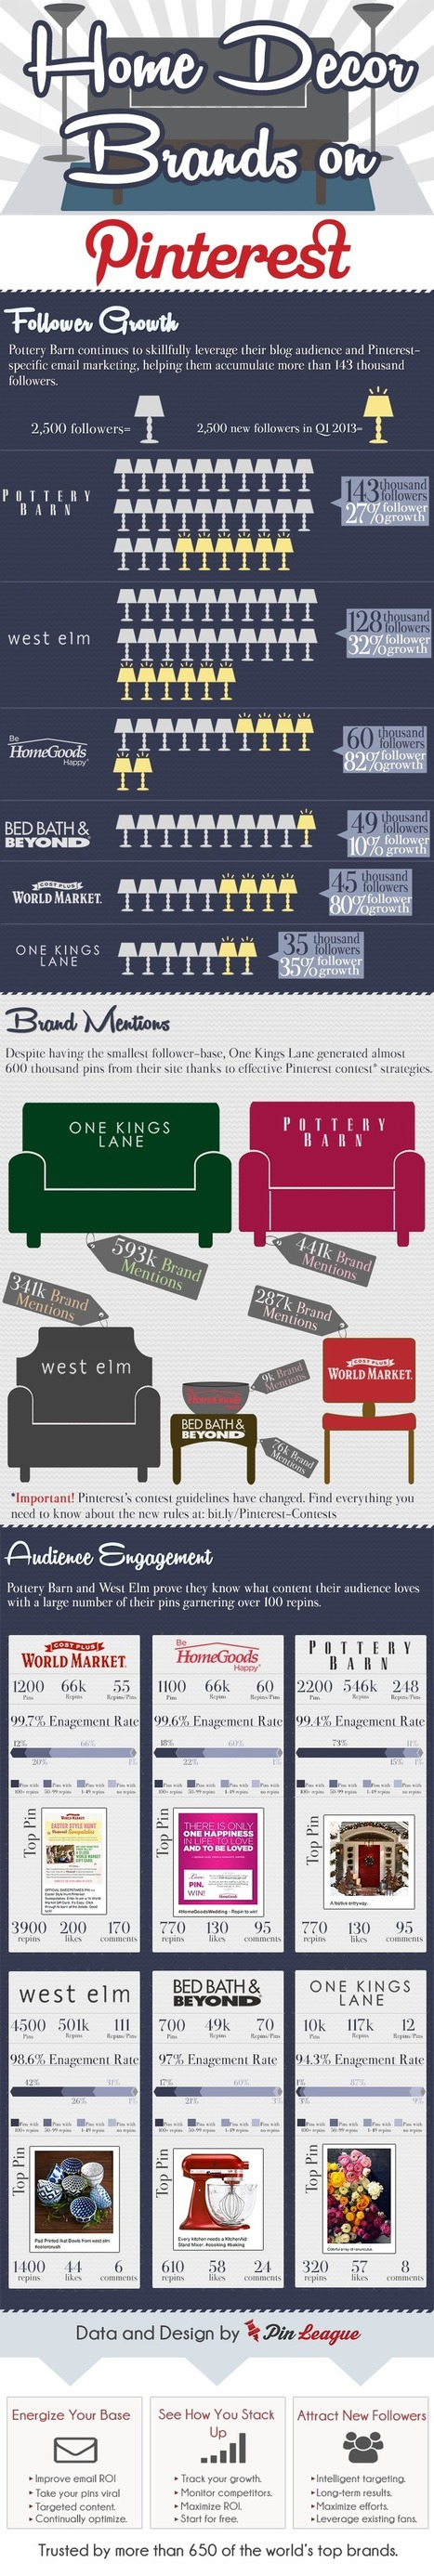 Which Brands Owned the Pinterest Home Decor Category [Infographic] - Business 2 Community | pinterest for research | Scoop.it